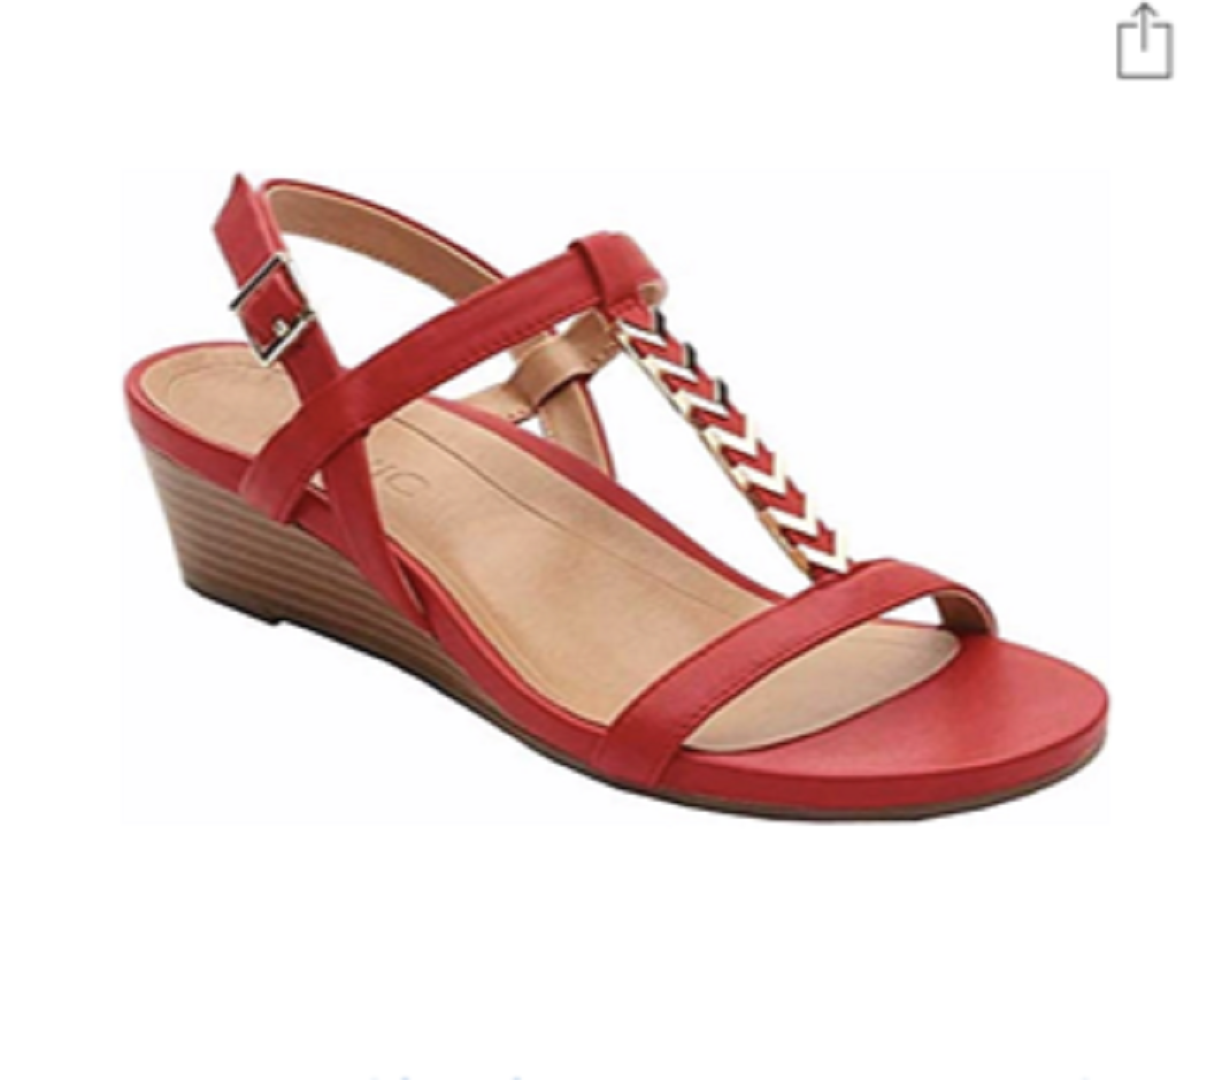 Vionic Women Cali T Strap Leather gold gold gold Hardware Wedge Sandals RED Sz 11M NIB 6b64f0